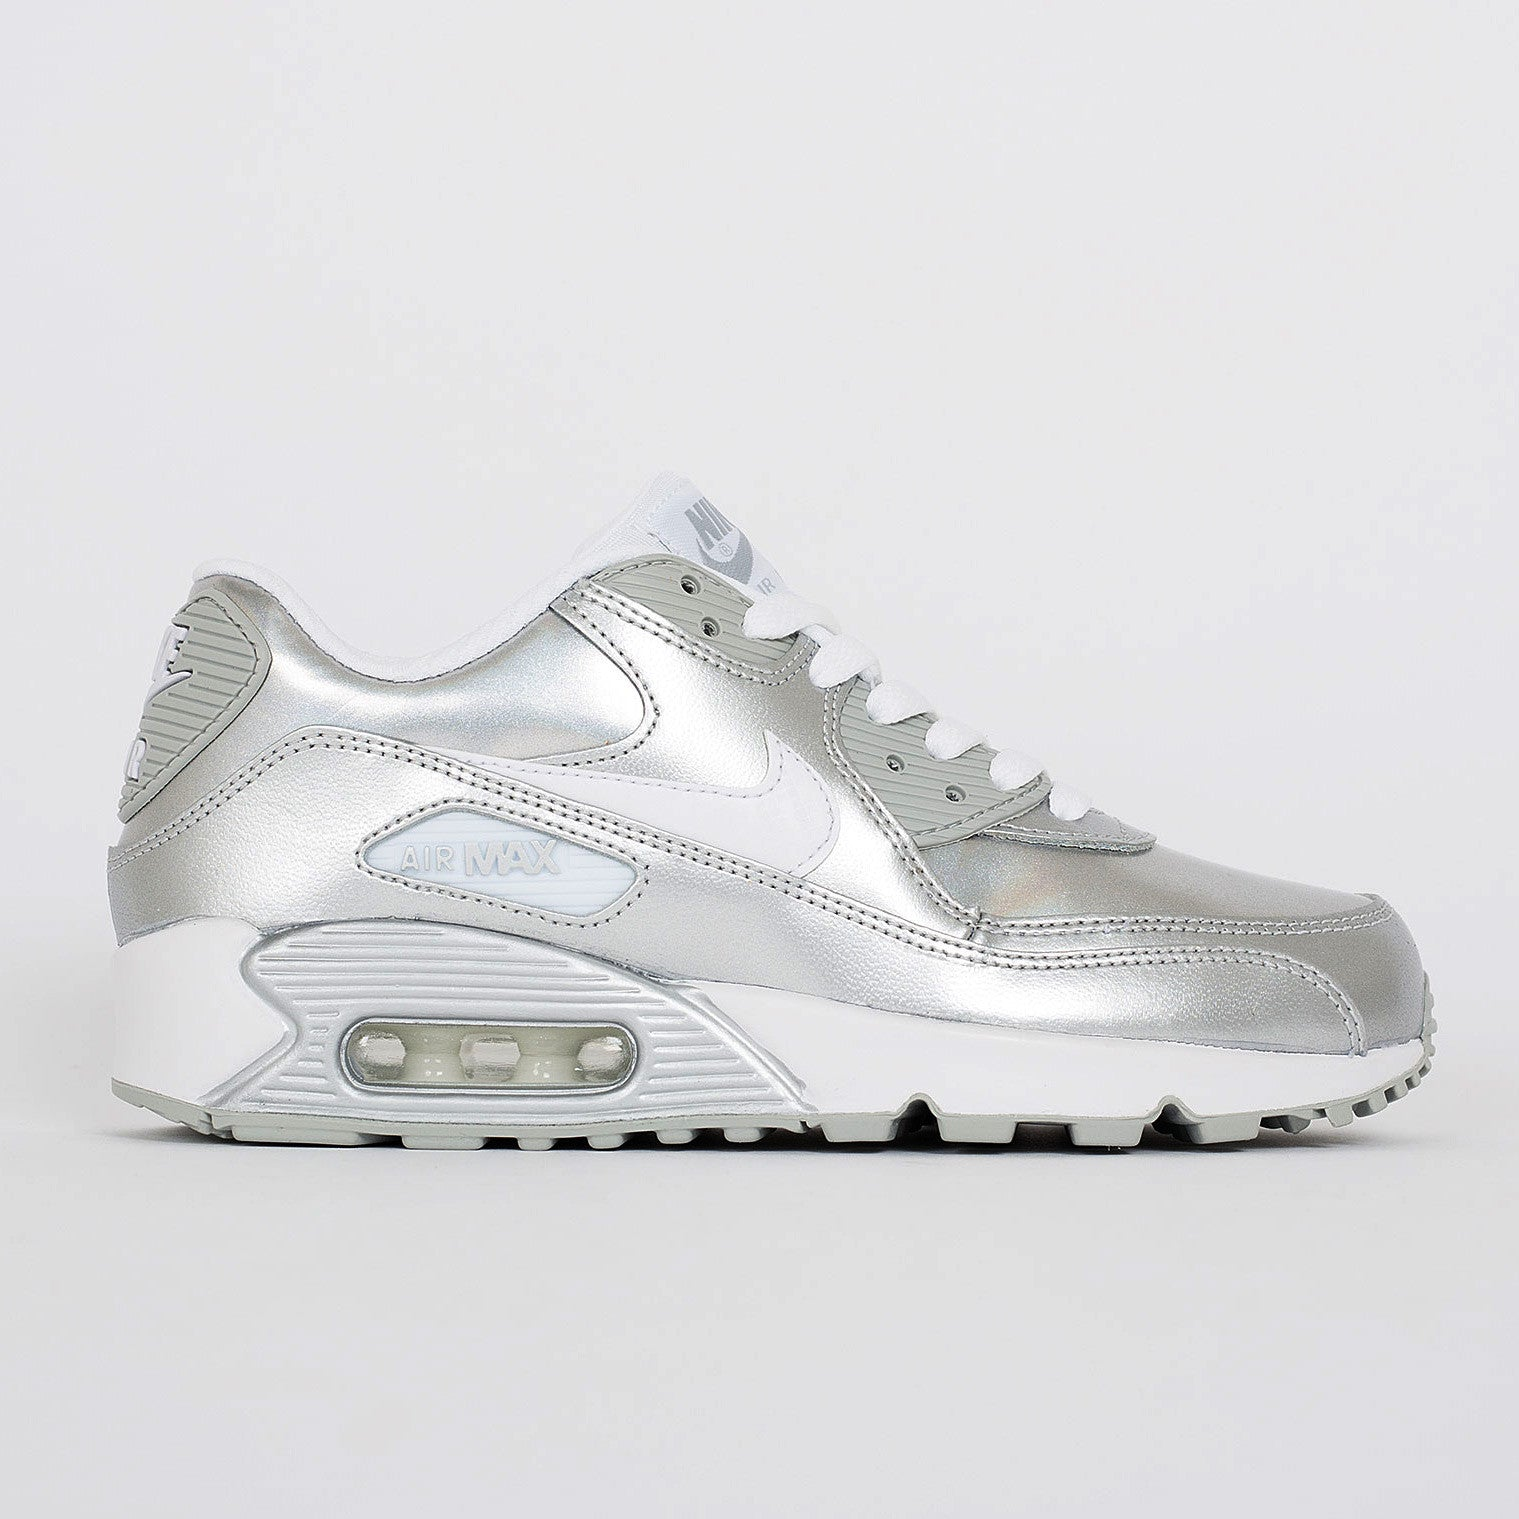 low priced 61ec1 b6120 Nike Air Max 90 Premium LTR (GS) Iridescent Silver (724871-100)   KIX-FILES